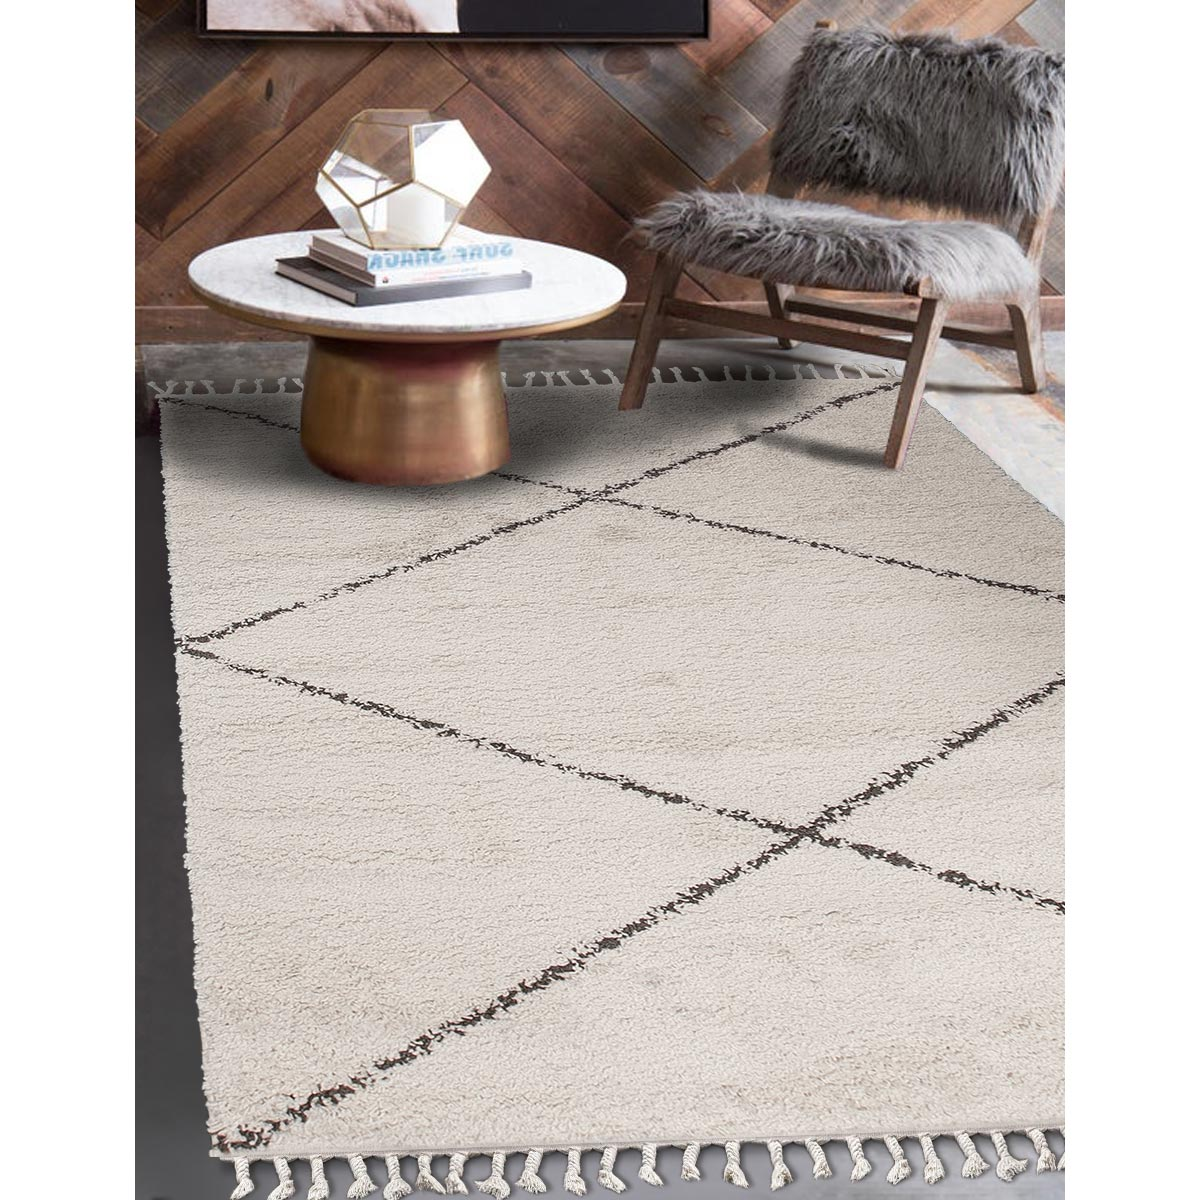 Shaggy Marrakech Rug 05 Cream/Black 2